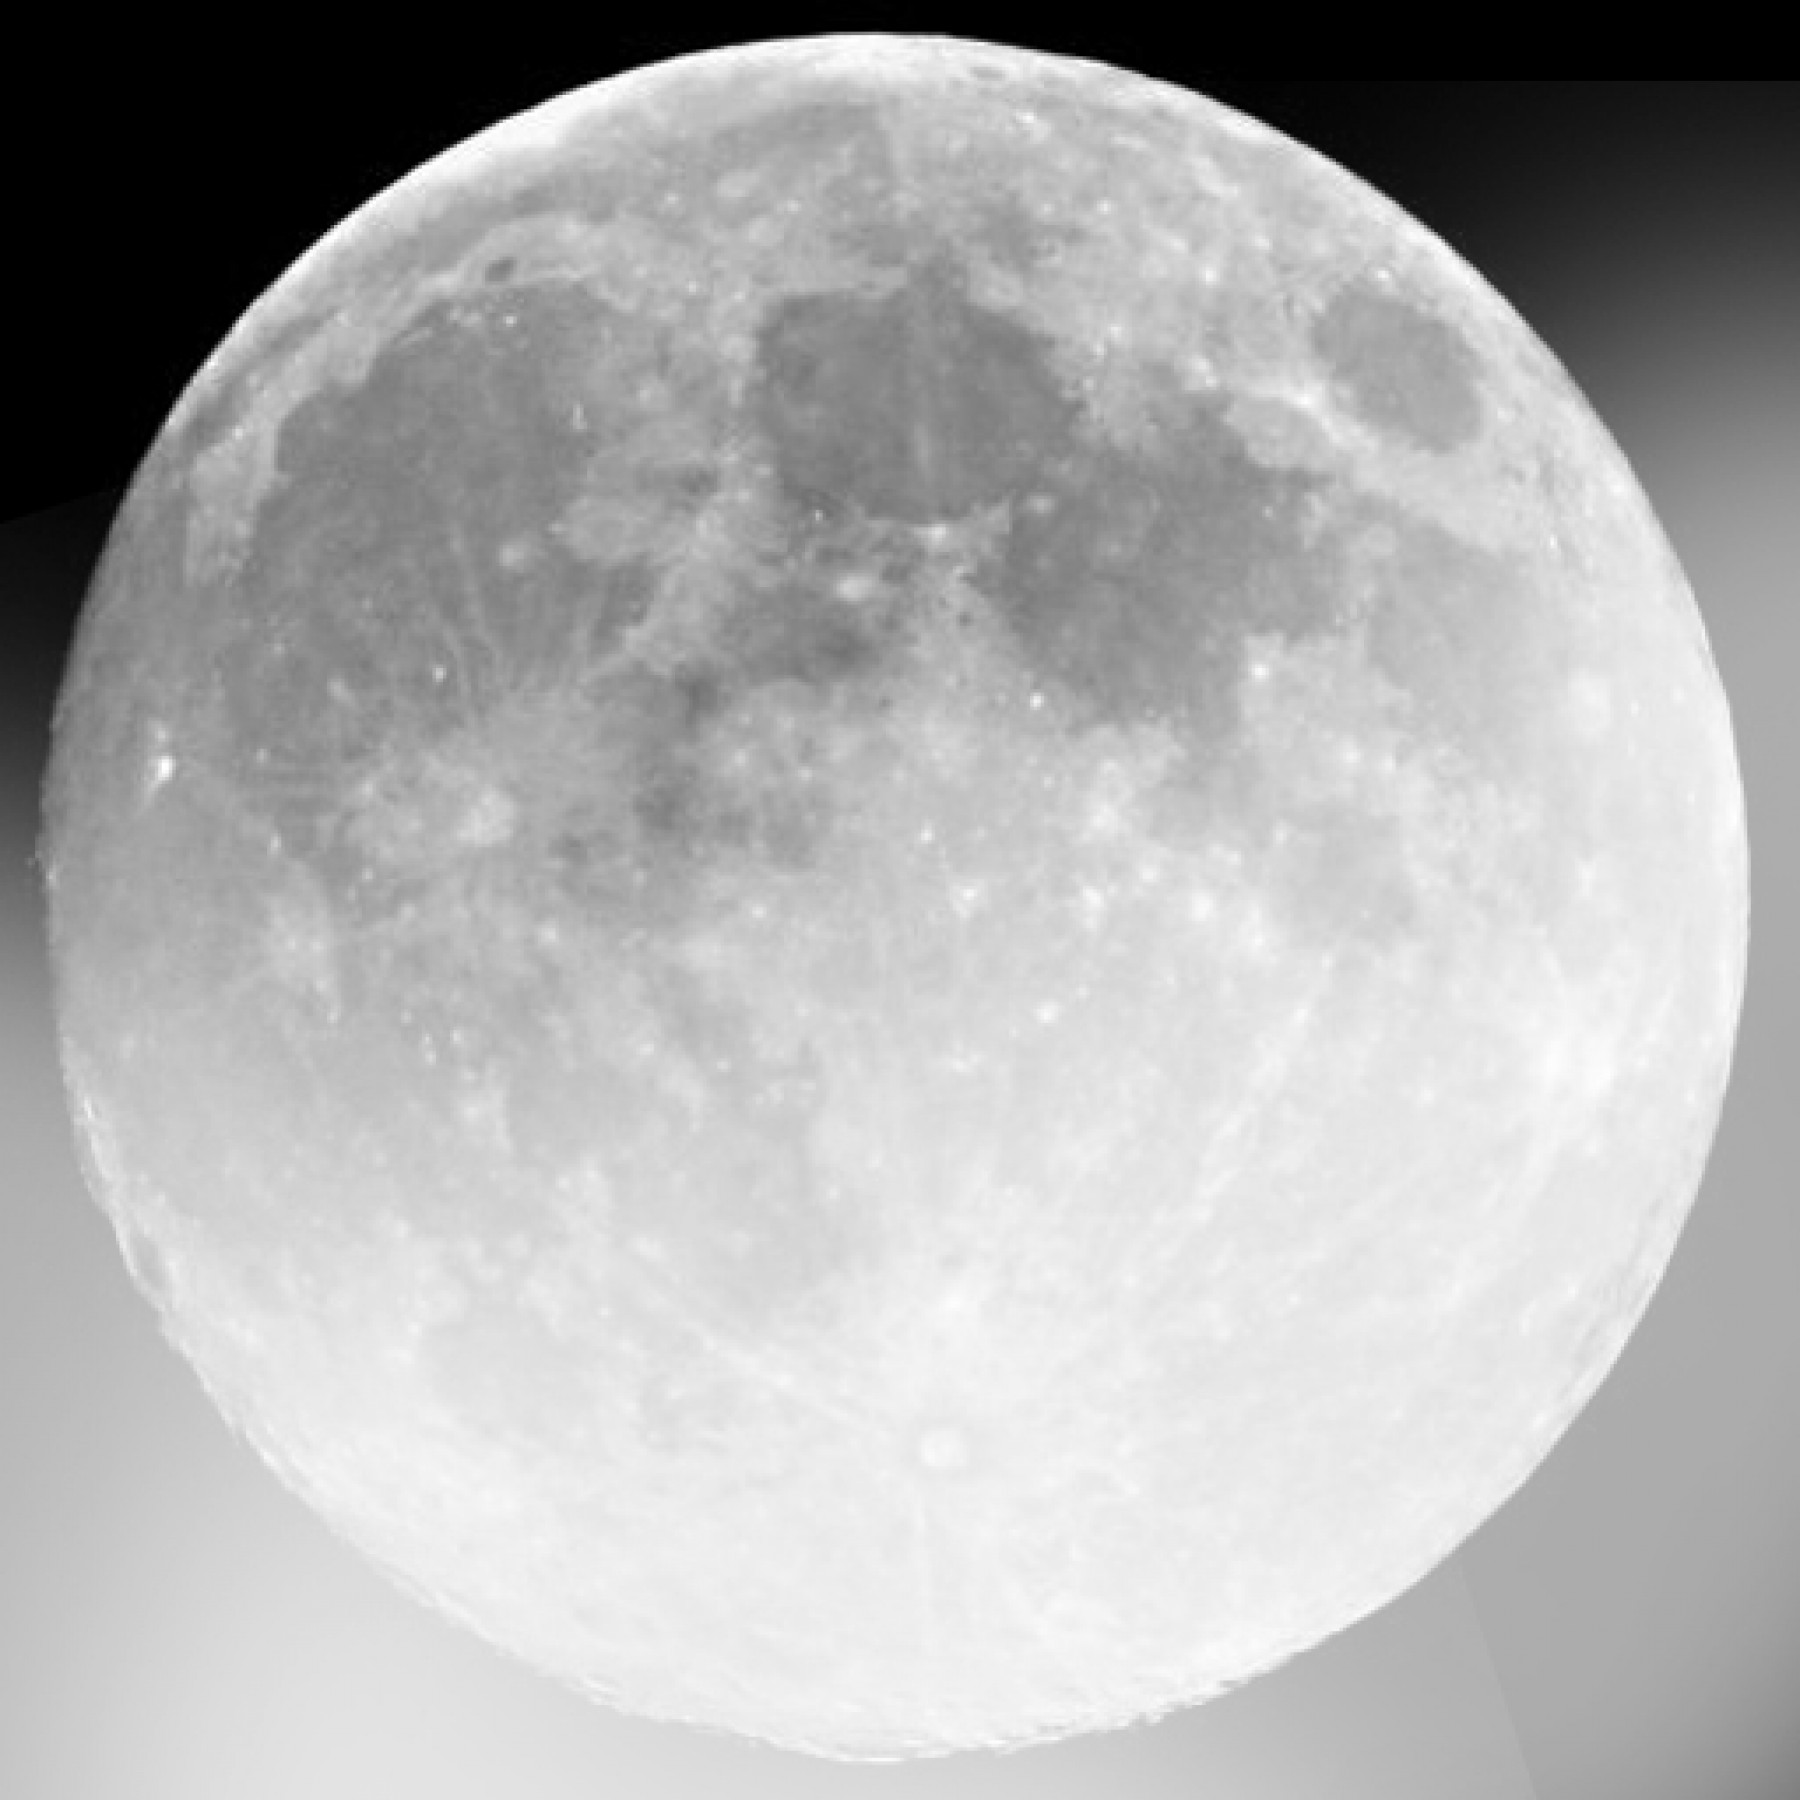 cloudy-moon-adults-science-tech-main-location1